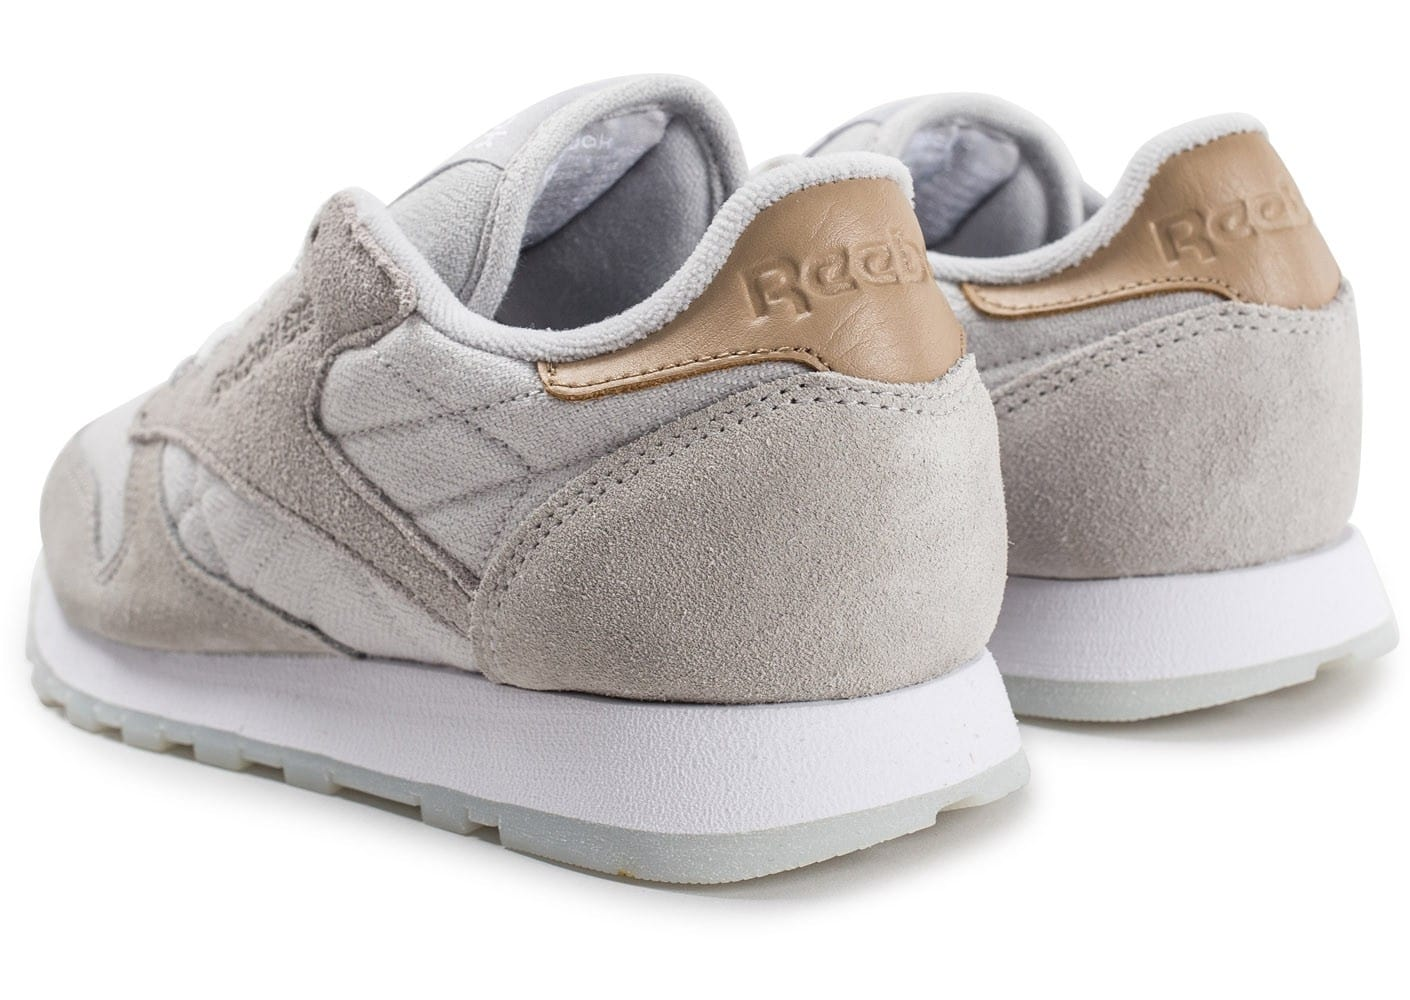 reebok classic leather sea worn grise chaussures femme chausport. Black Bedroom Furniture Sets. Home Design Ideas